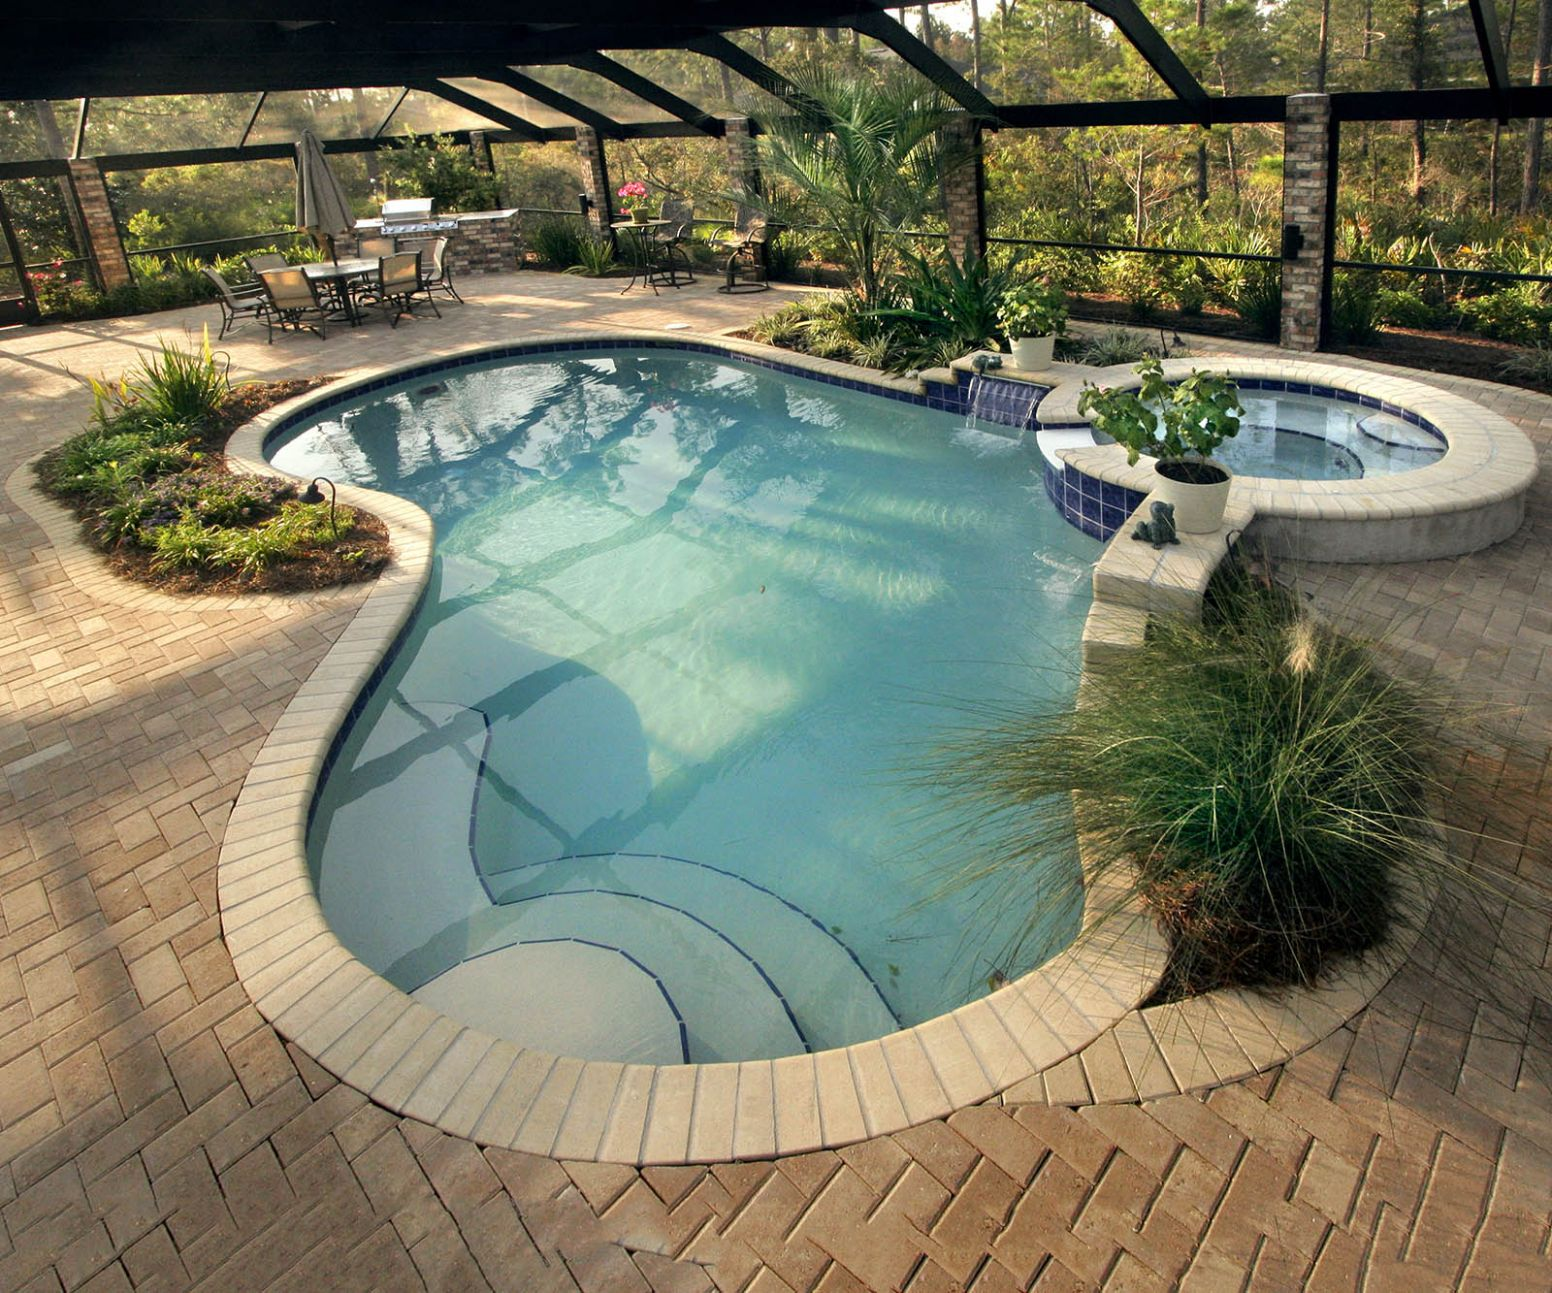 Top Inground Pool Renovation Ideas About Remodel Inspiration ...